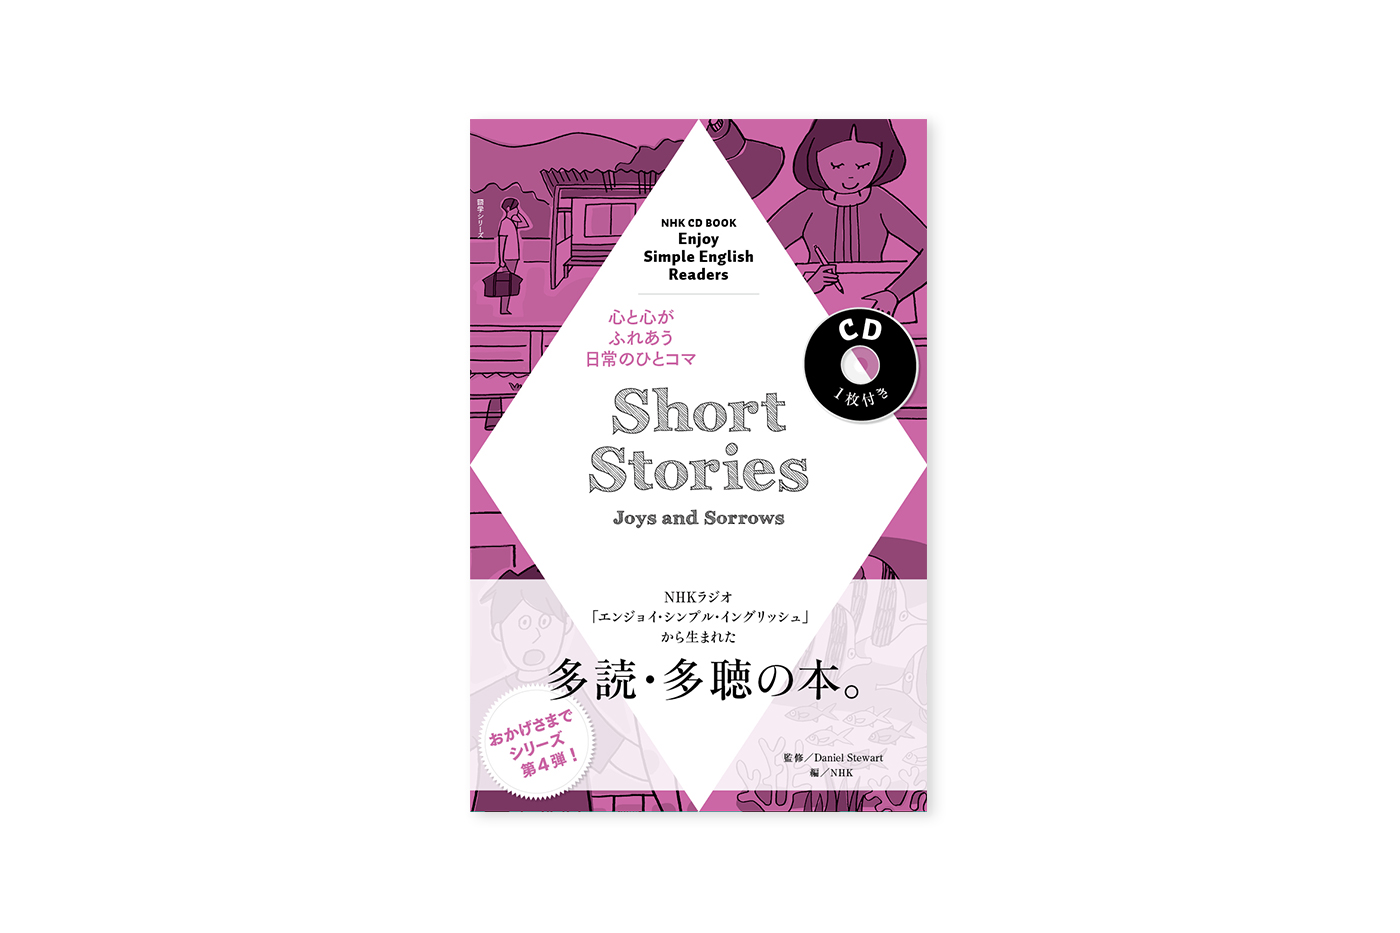 shortstories_hyoushi_right